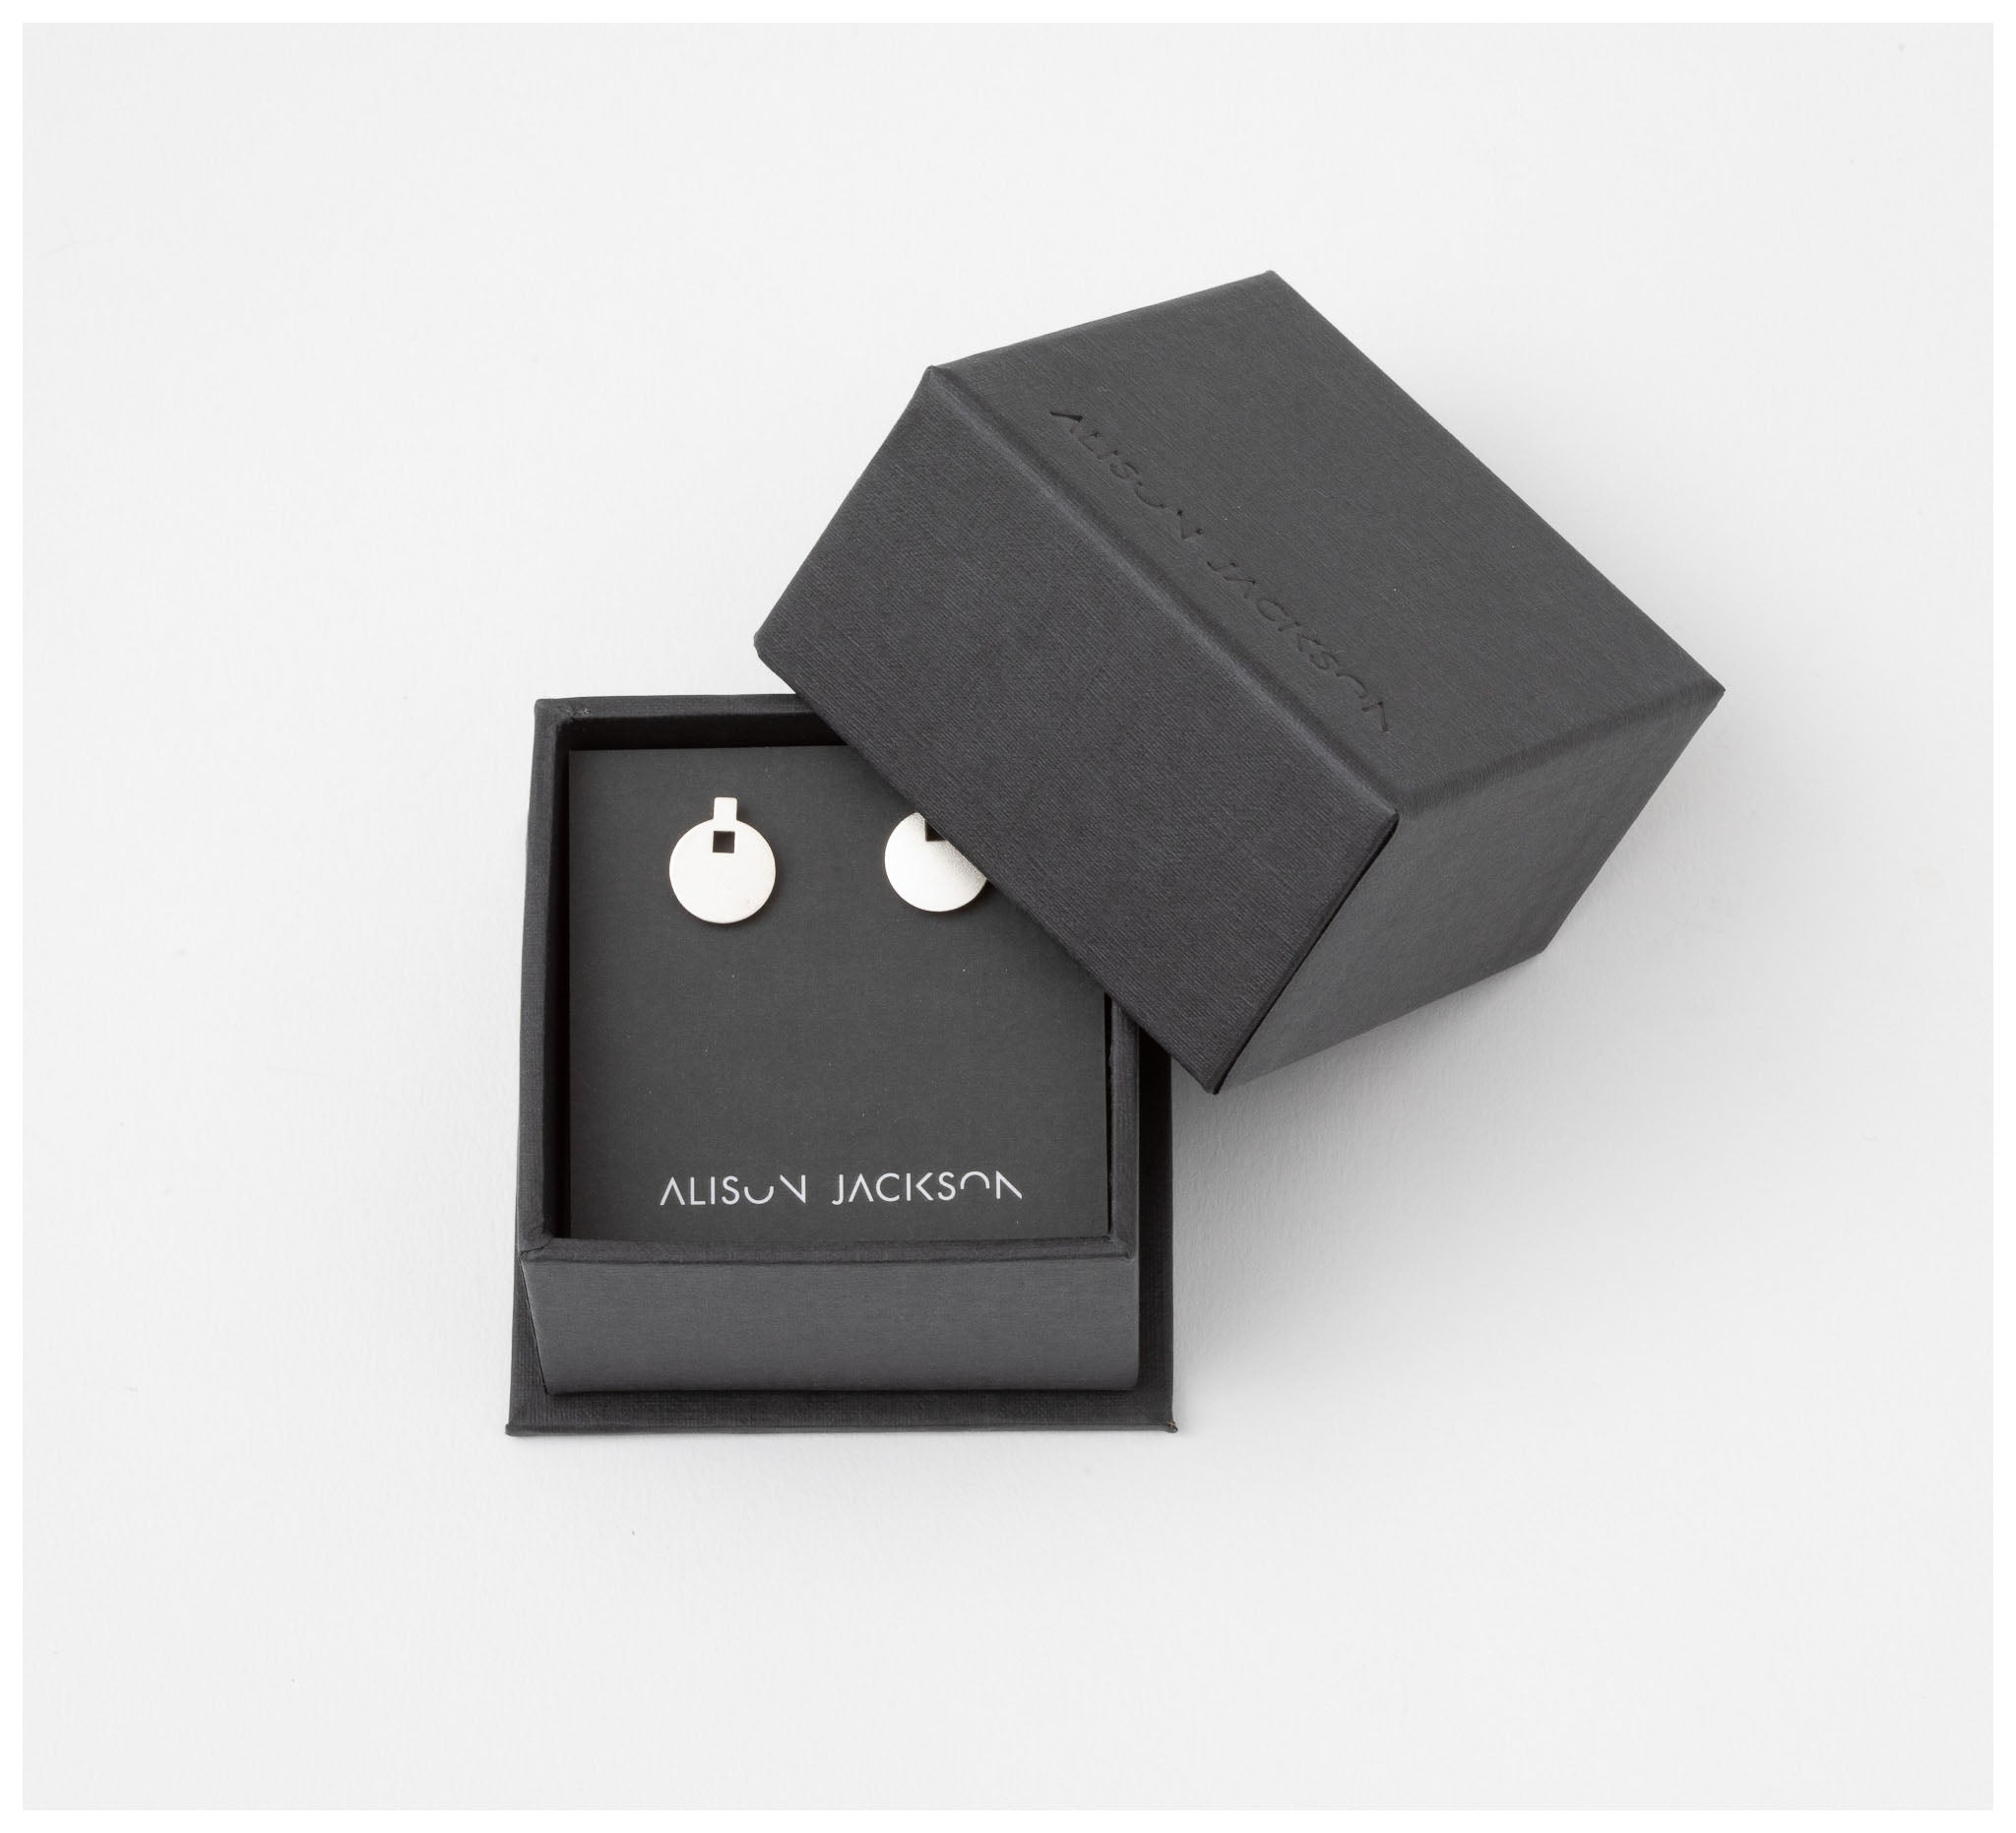 Alison Jackson - Through the View Earrings